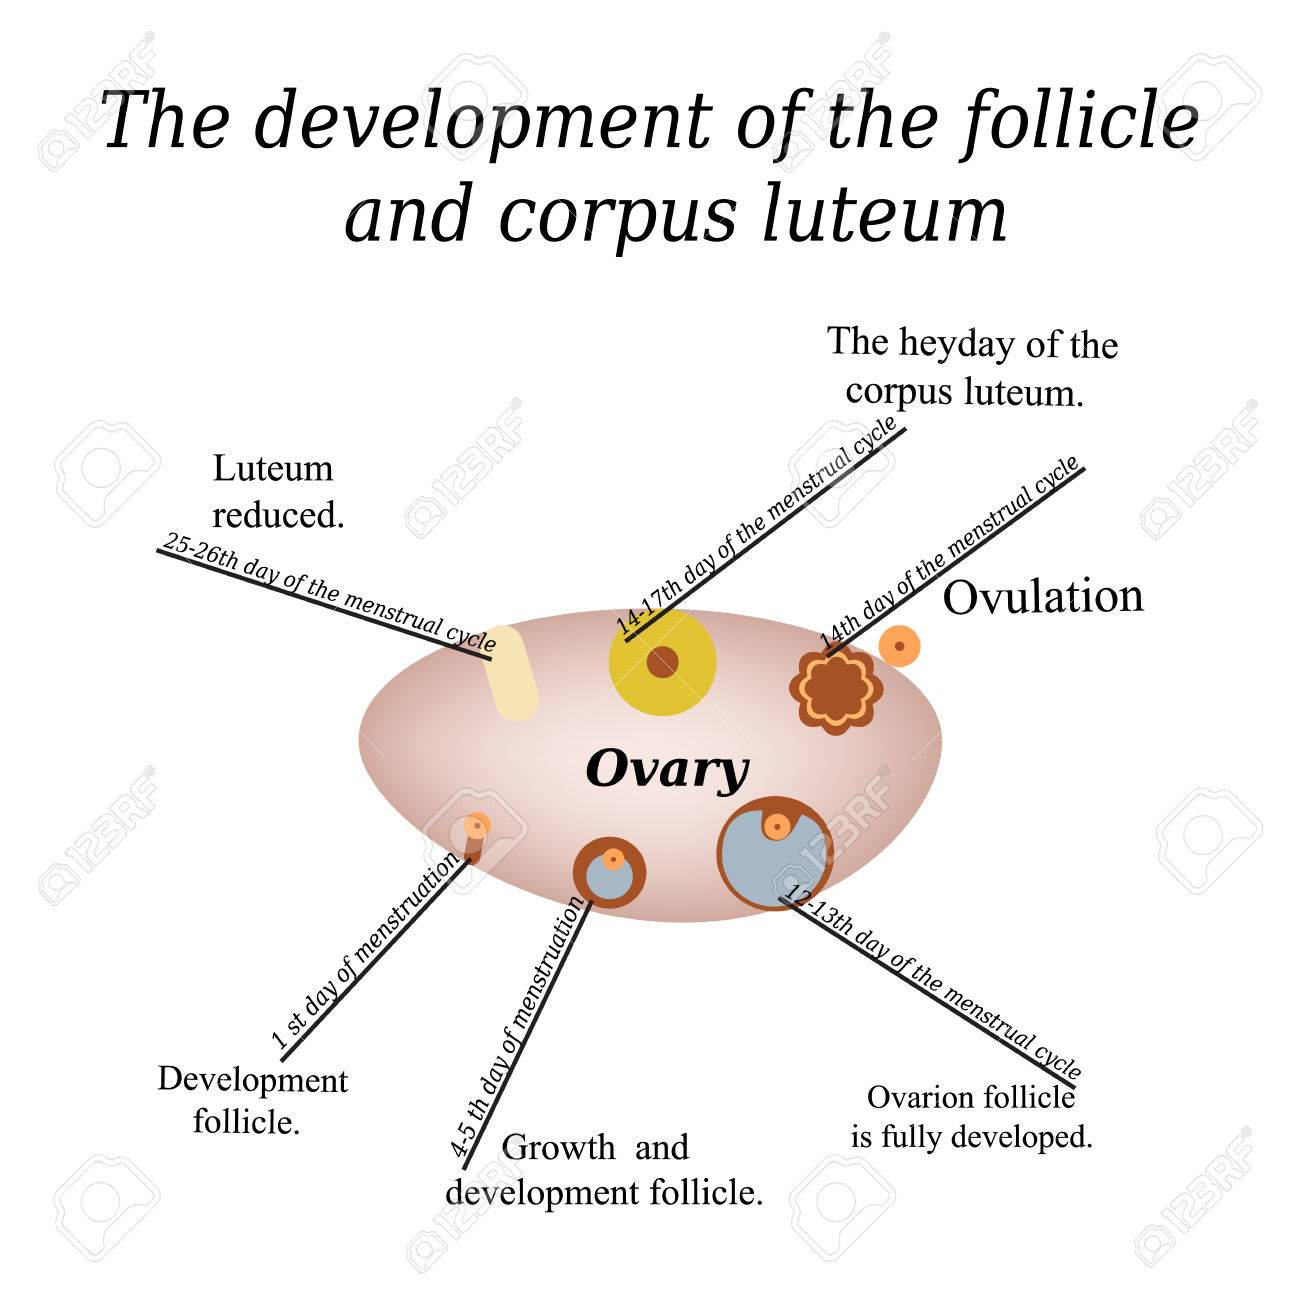 ovary corpus albicans diagram wiring diagram online Diagram of Corpus Luteum it shows the development of ovarian follicle and corpus luteum cyst on ovaries ovary corpus albicans diagram